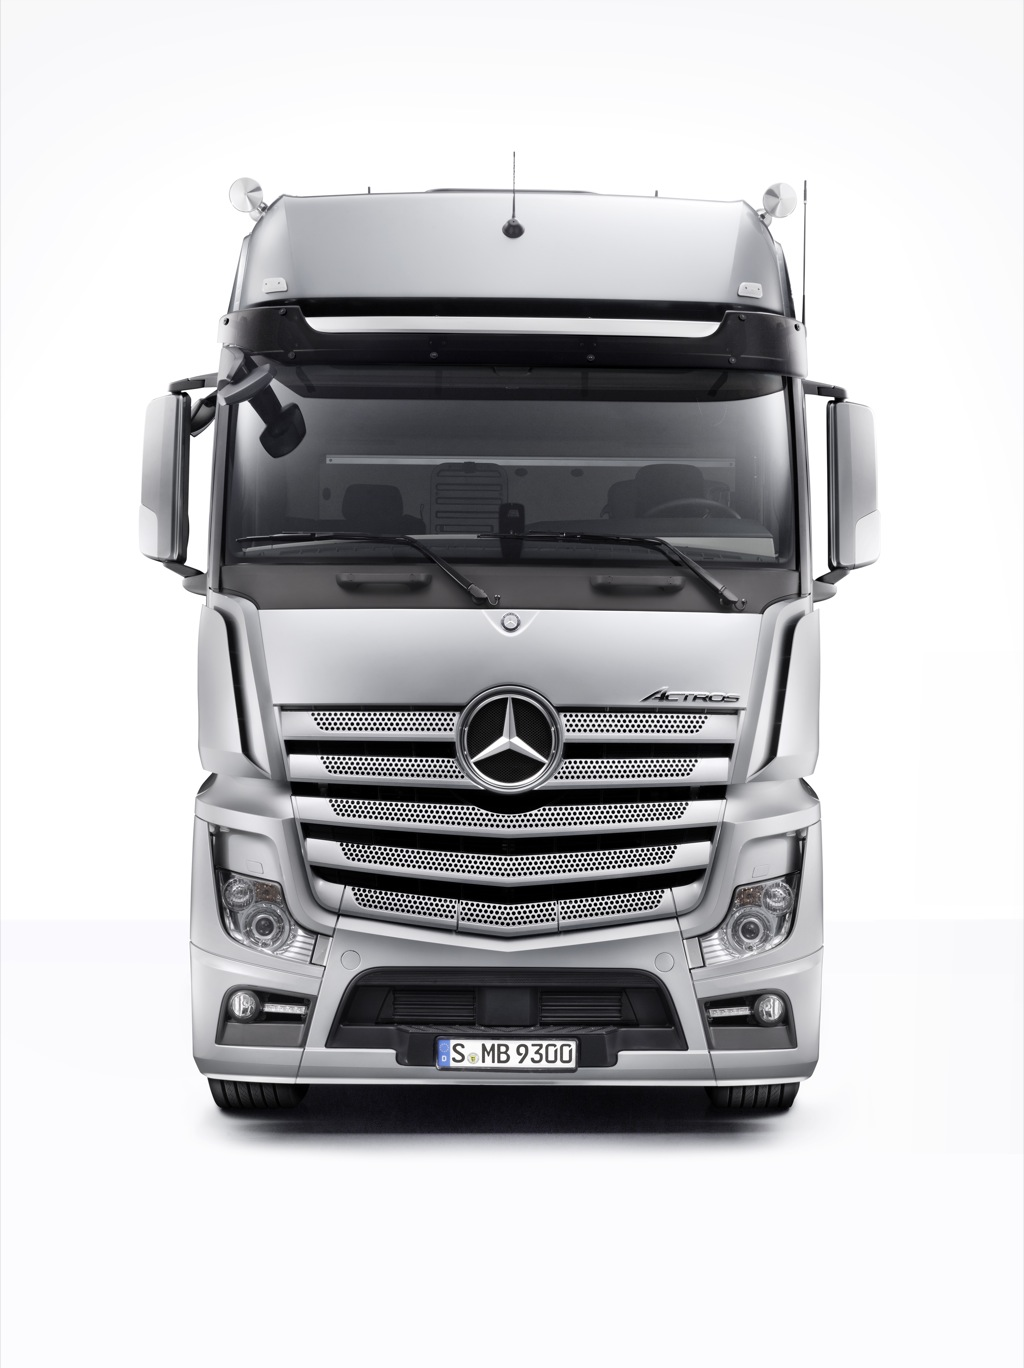 Update orders open for the new long distance mercedes for The new mercedes benz truck